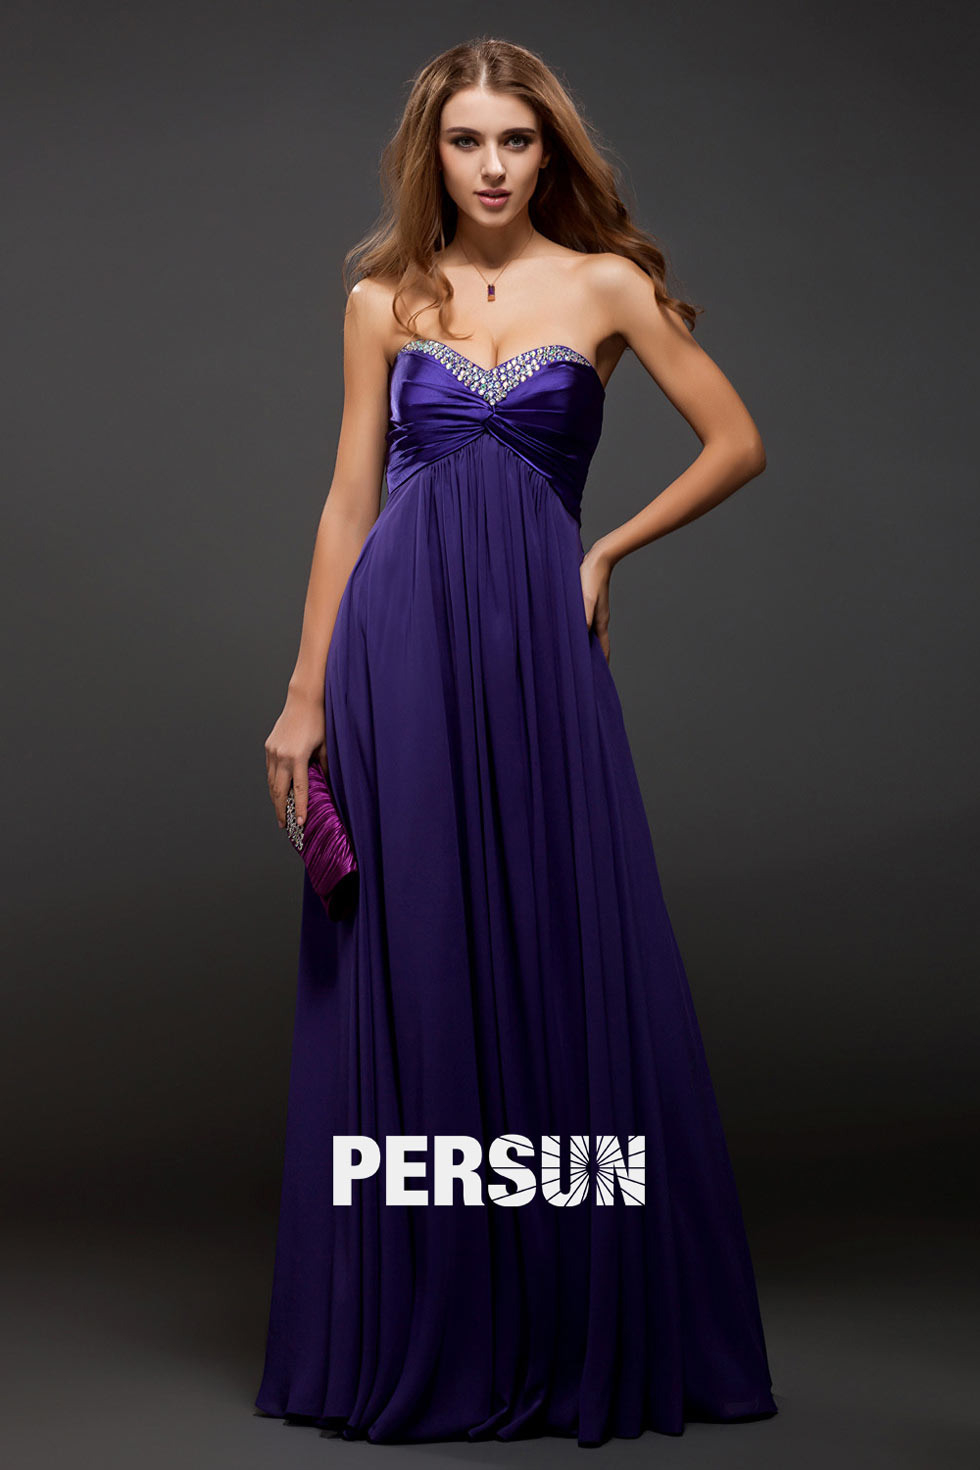 20 Genial One Shoulder Abendkleid Lang GalerieDesigner Luxus One Shoulder Abendkleid Lang Ärmel